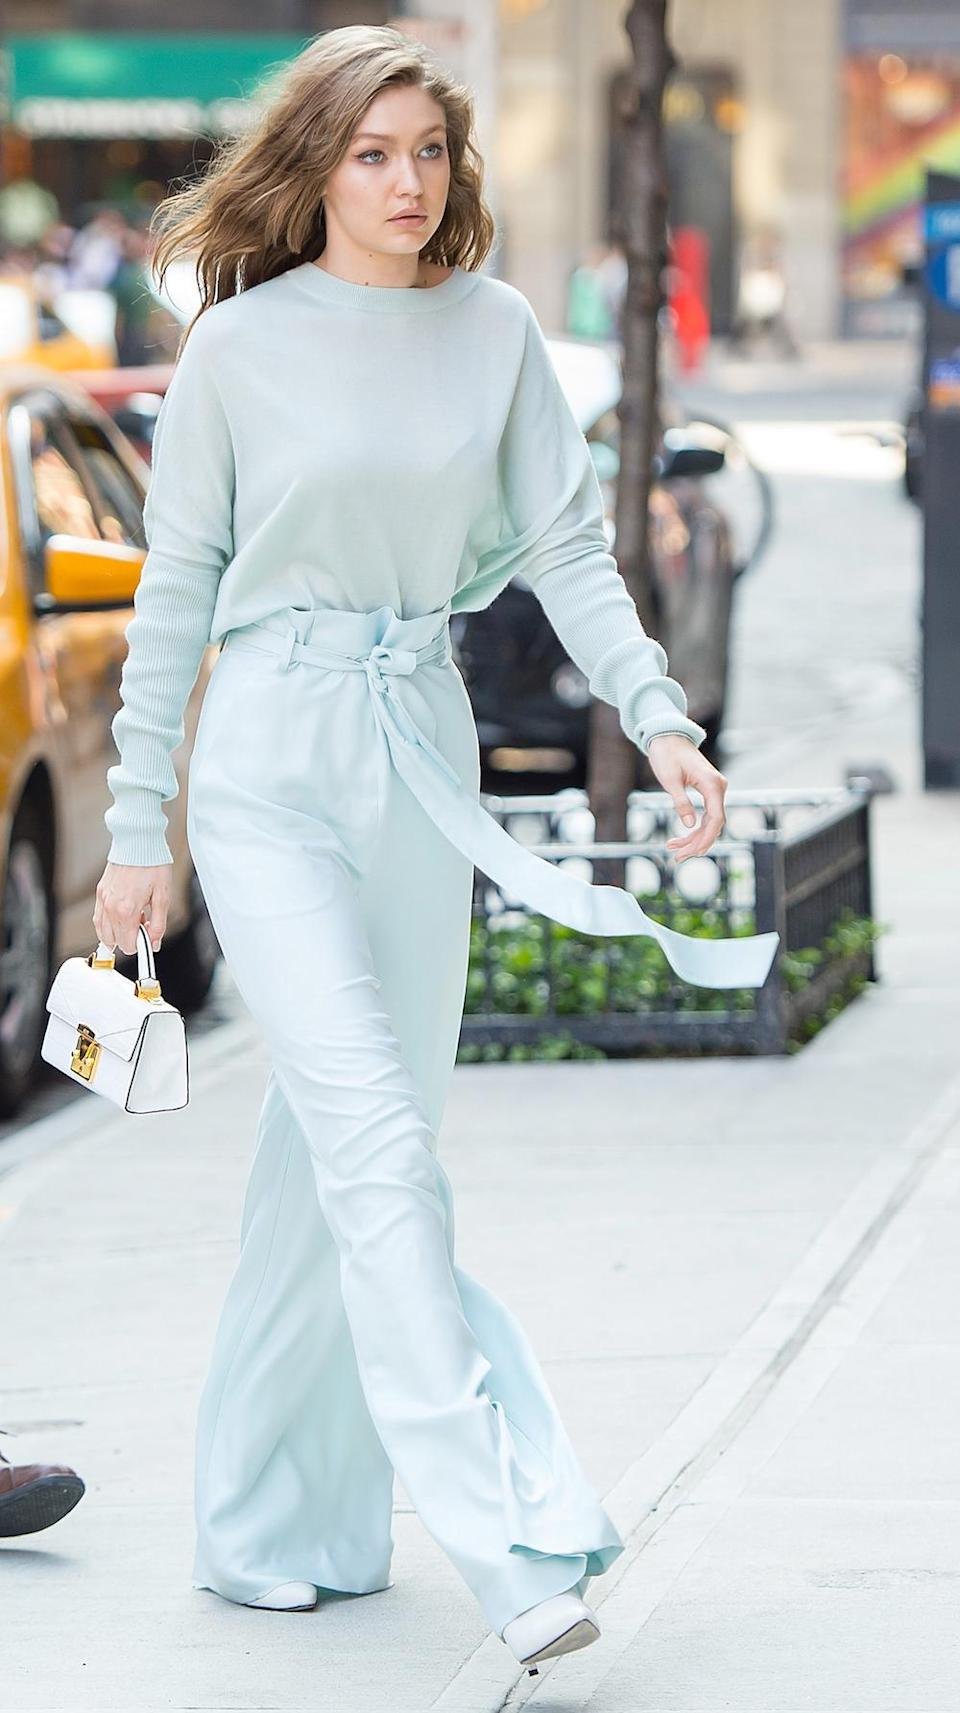 Hadid truly pulls off this head-to-toe powder blue outfit.